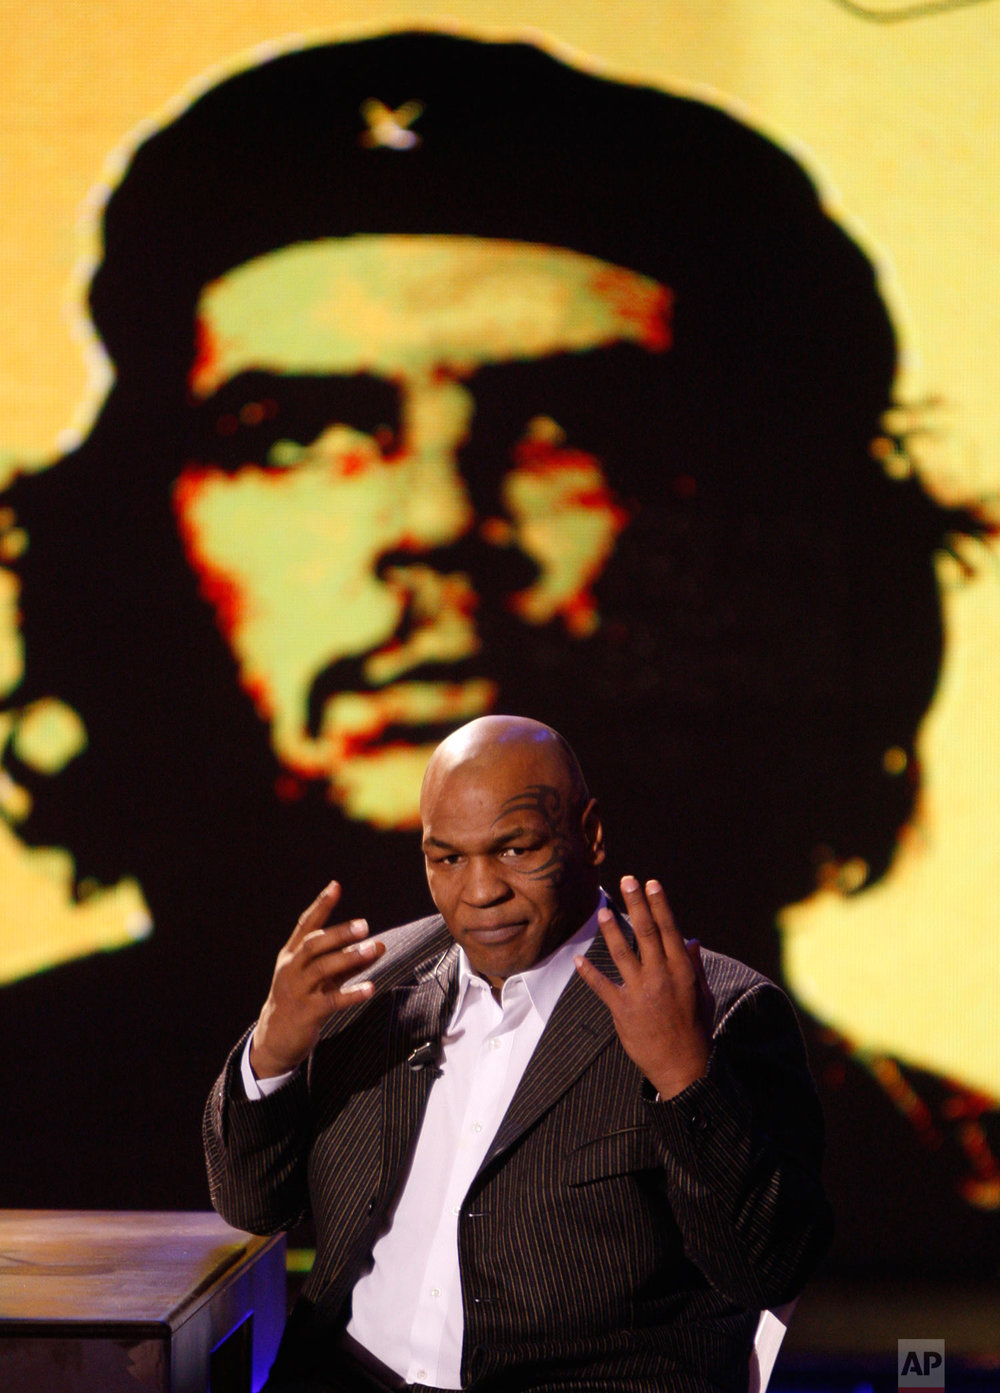 "Former heavyweight boxing champion Mike Tyson reacts as a picture of Che Guevara is projected on a giant screen, during the taping of the ""Chiambretti Night"" television show in Milan, Italy, Monday, Jan. 25, 2010. (AP Photo/Luca Bruno)"